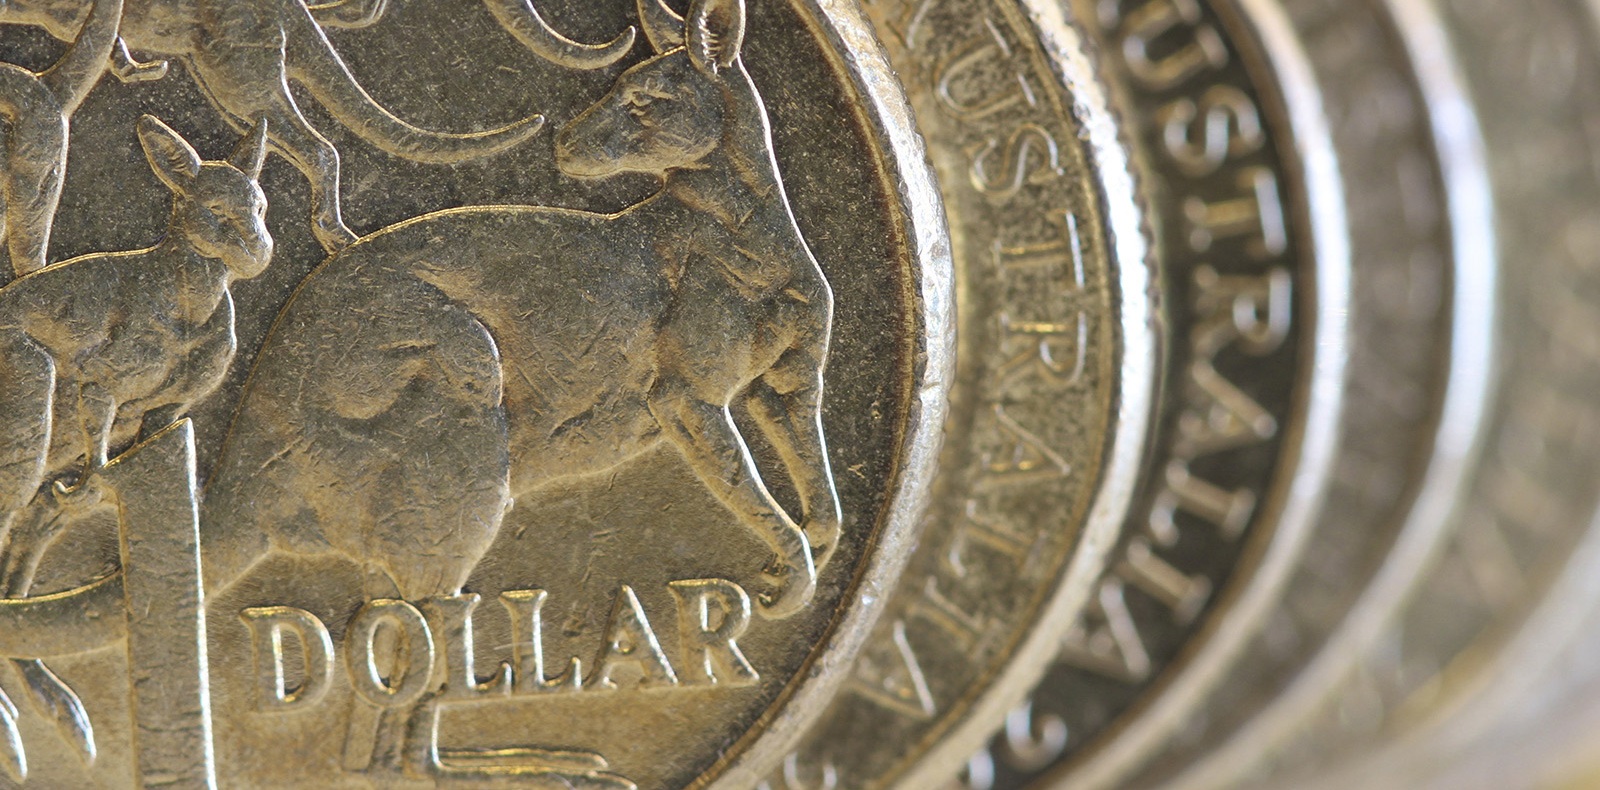 Australian Dollar continues to be hampered by US China trade war, is an end in sight